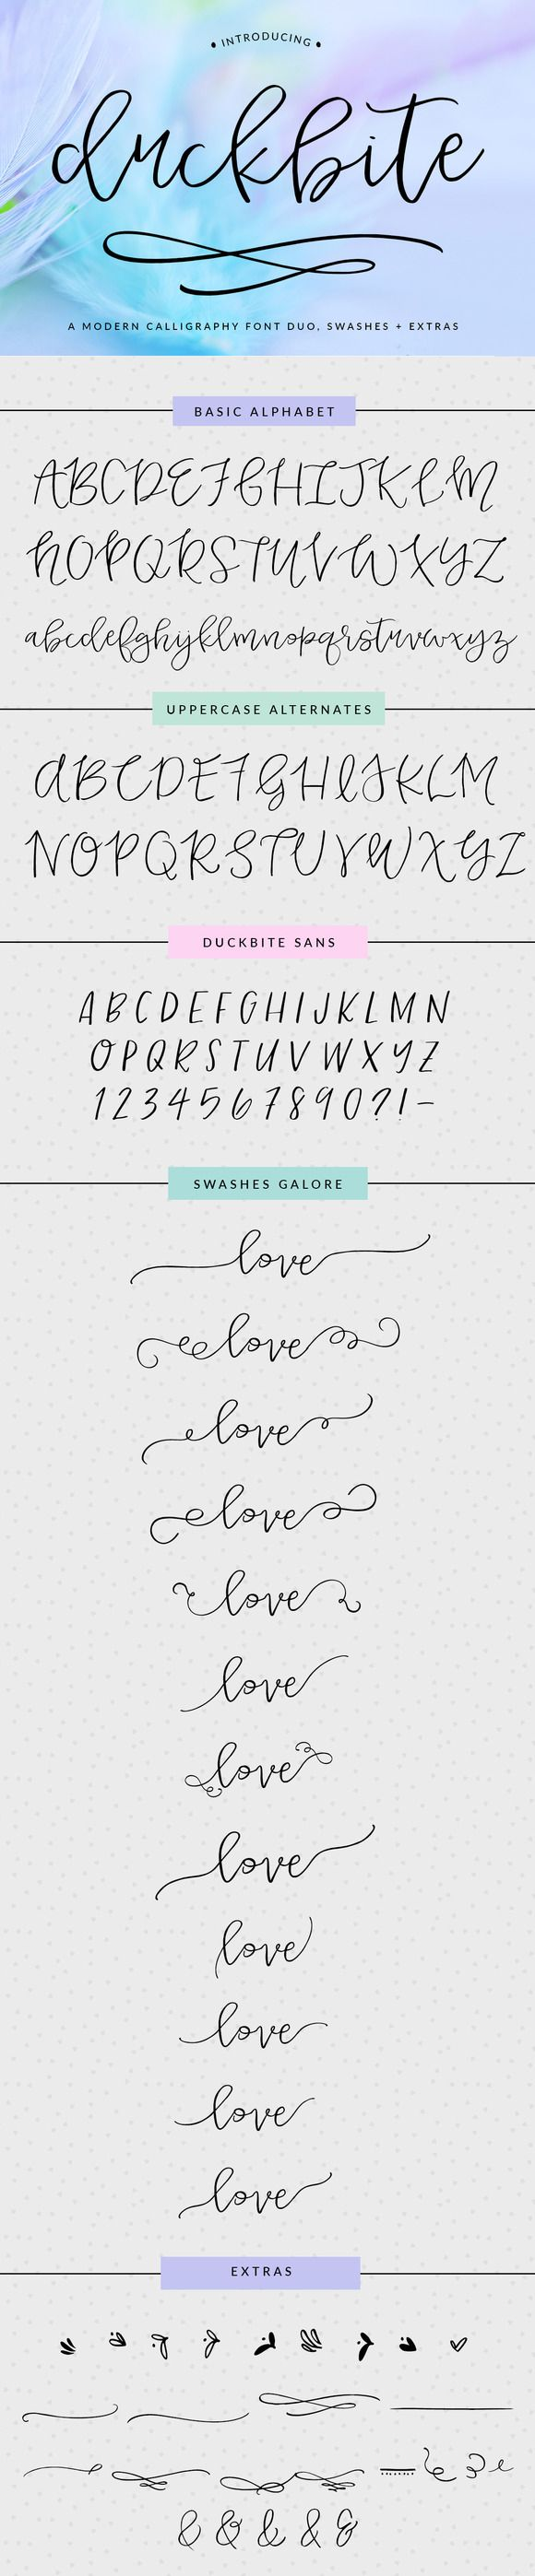 Duckbite – A modern calligraphy typeface duo with a host of swashes and extras